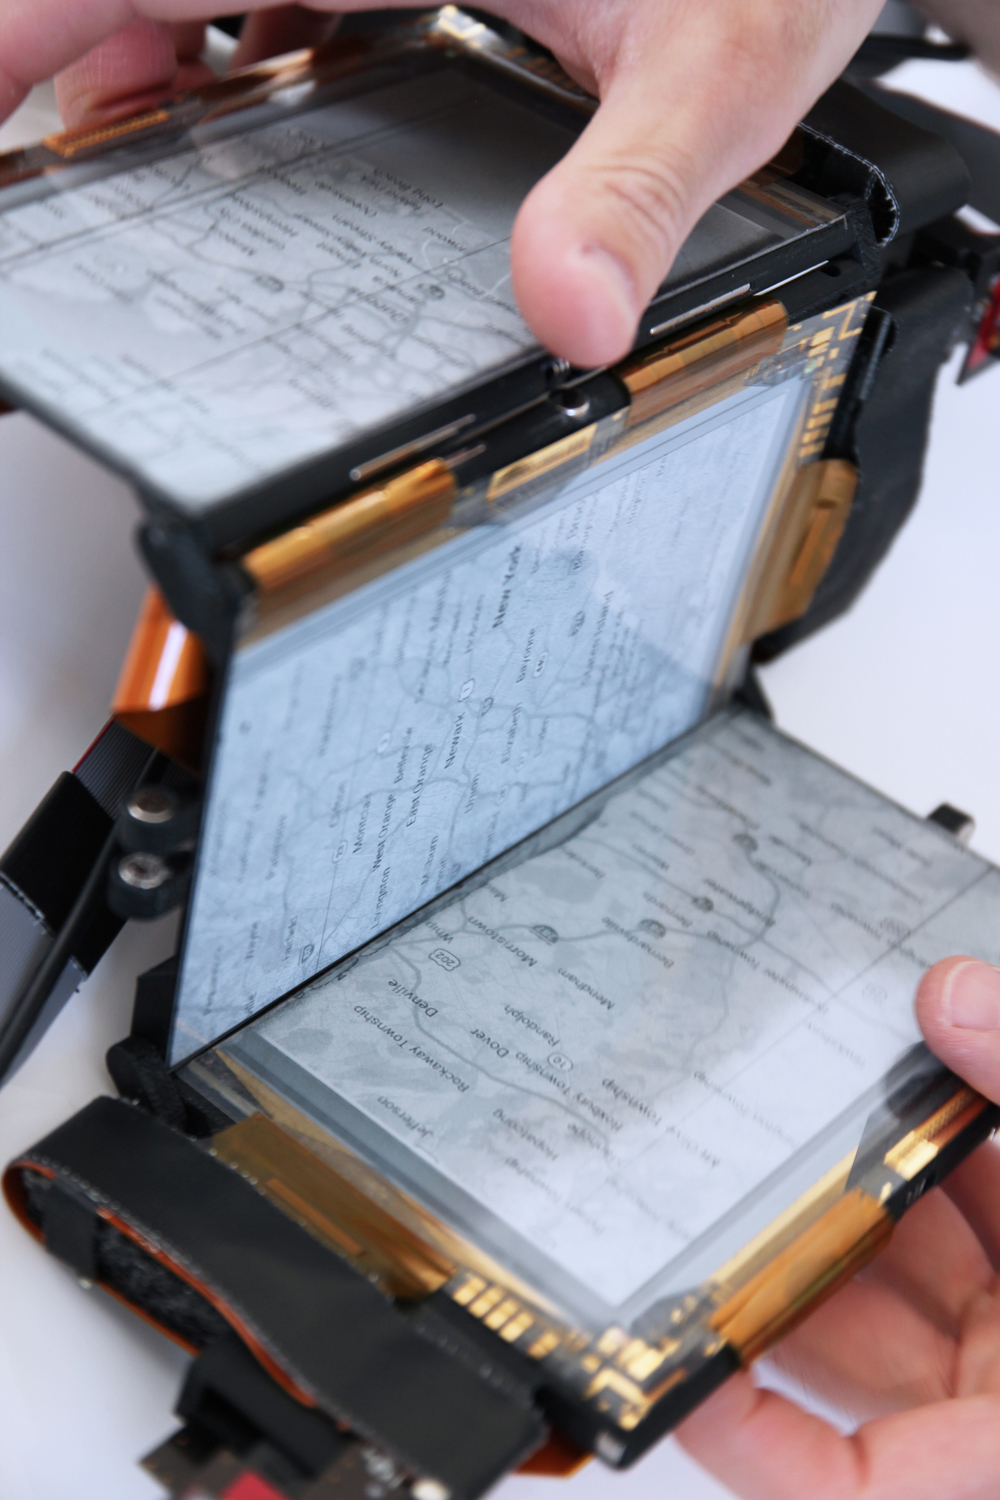 paperfold (2014): foldable thinfilm smartphone